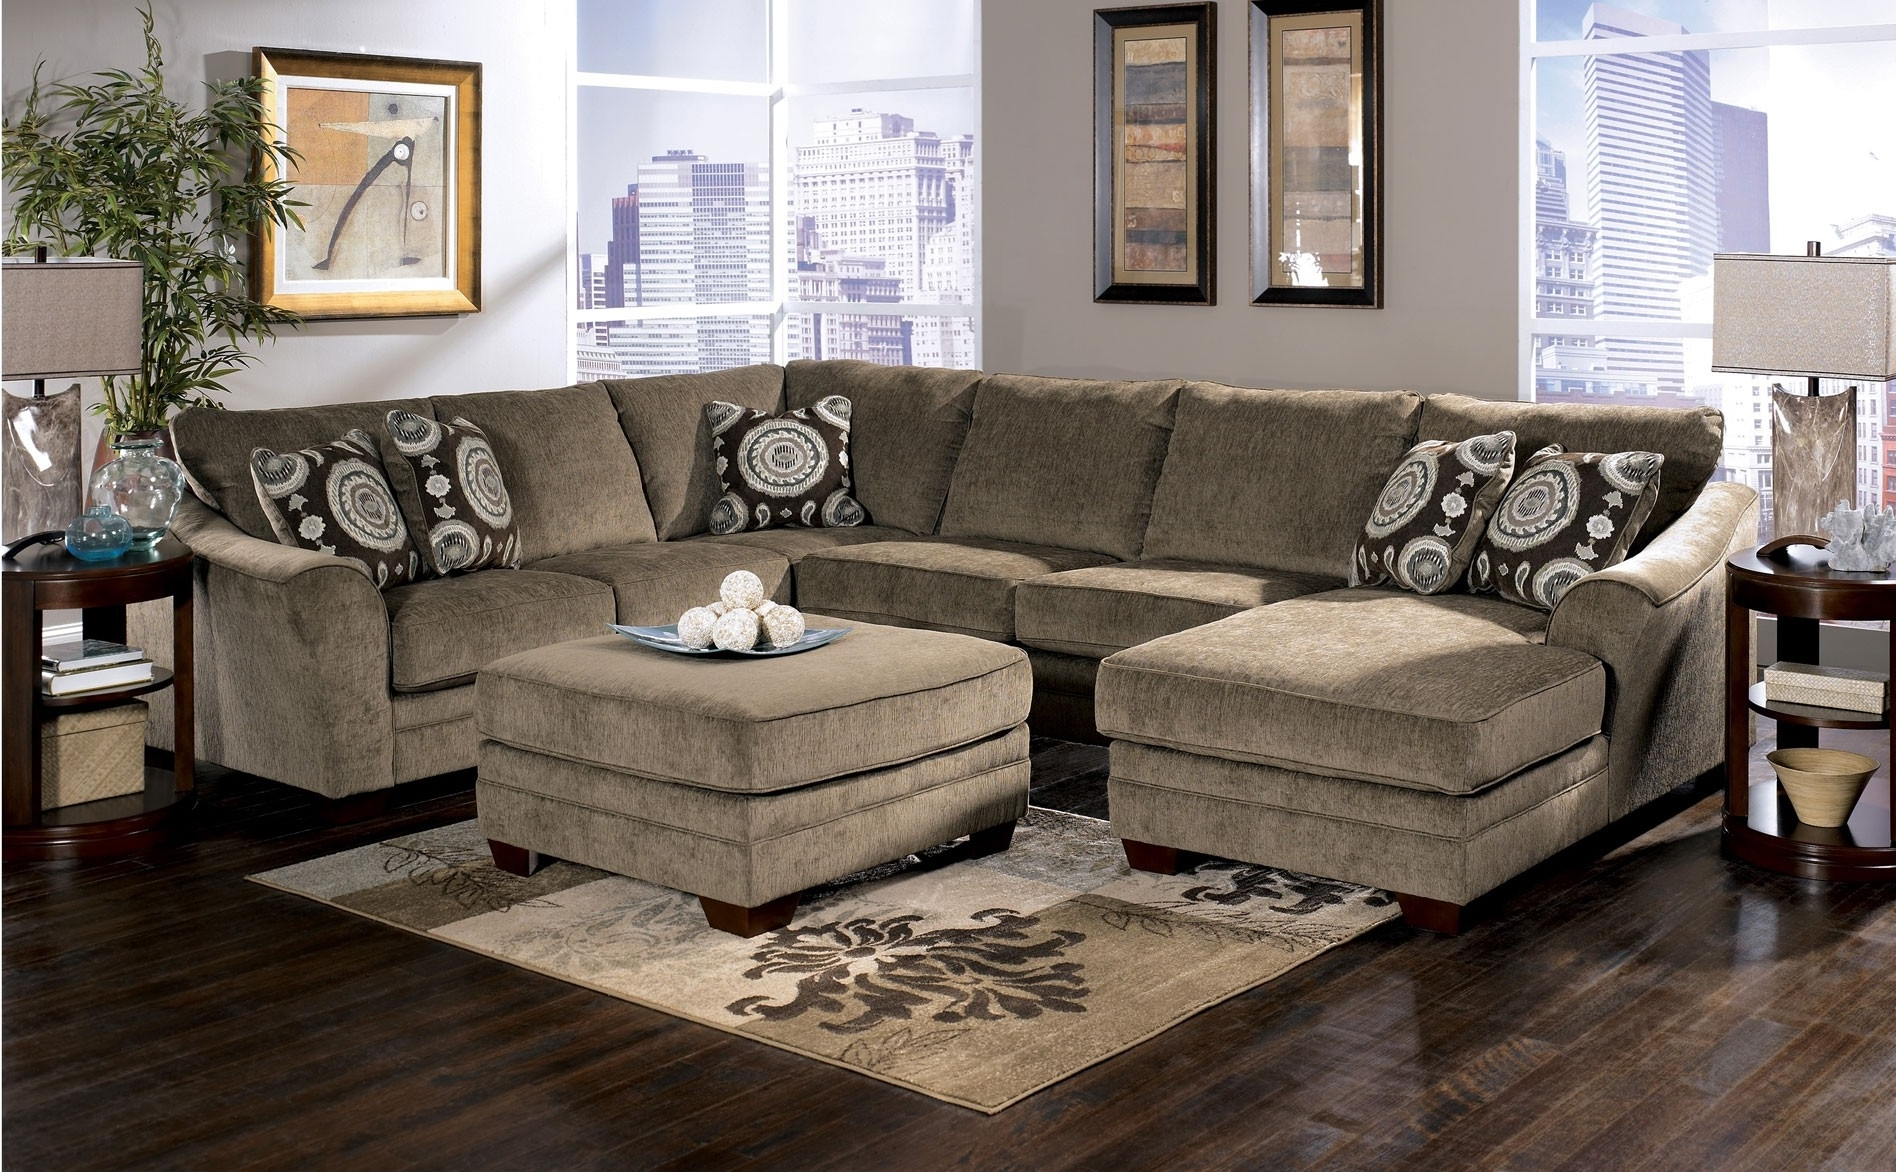 Sectional Sofas With Chaise Lounge And Ottoman With Latest Best Black Fabric Sectional Sofas Images – Liltigertoo (View 14 of 20)